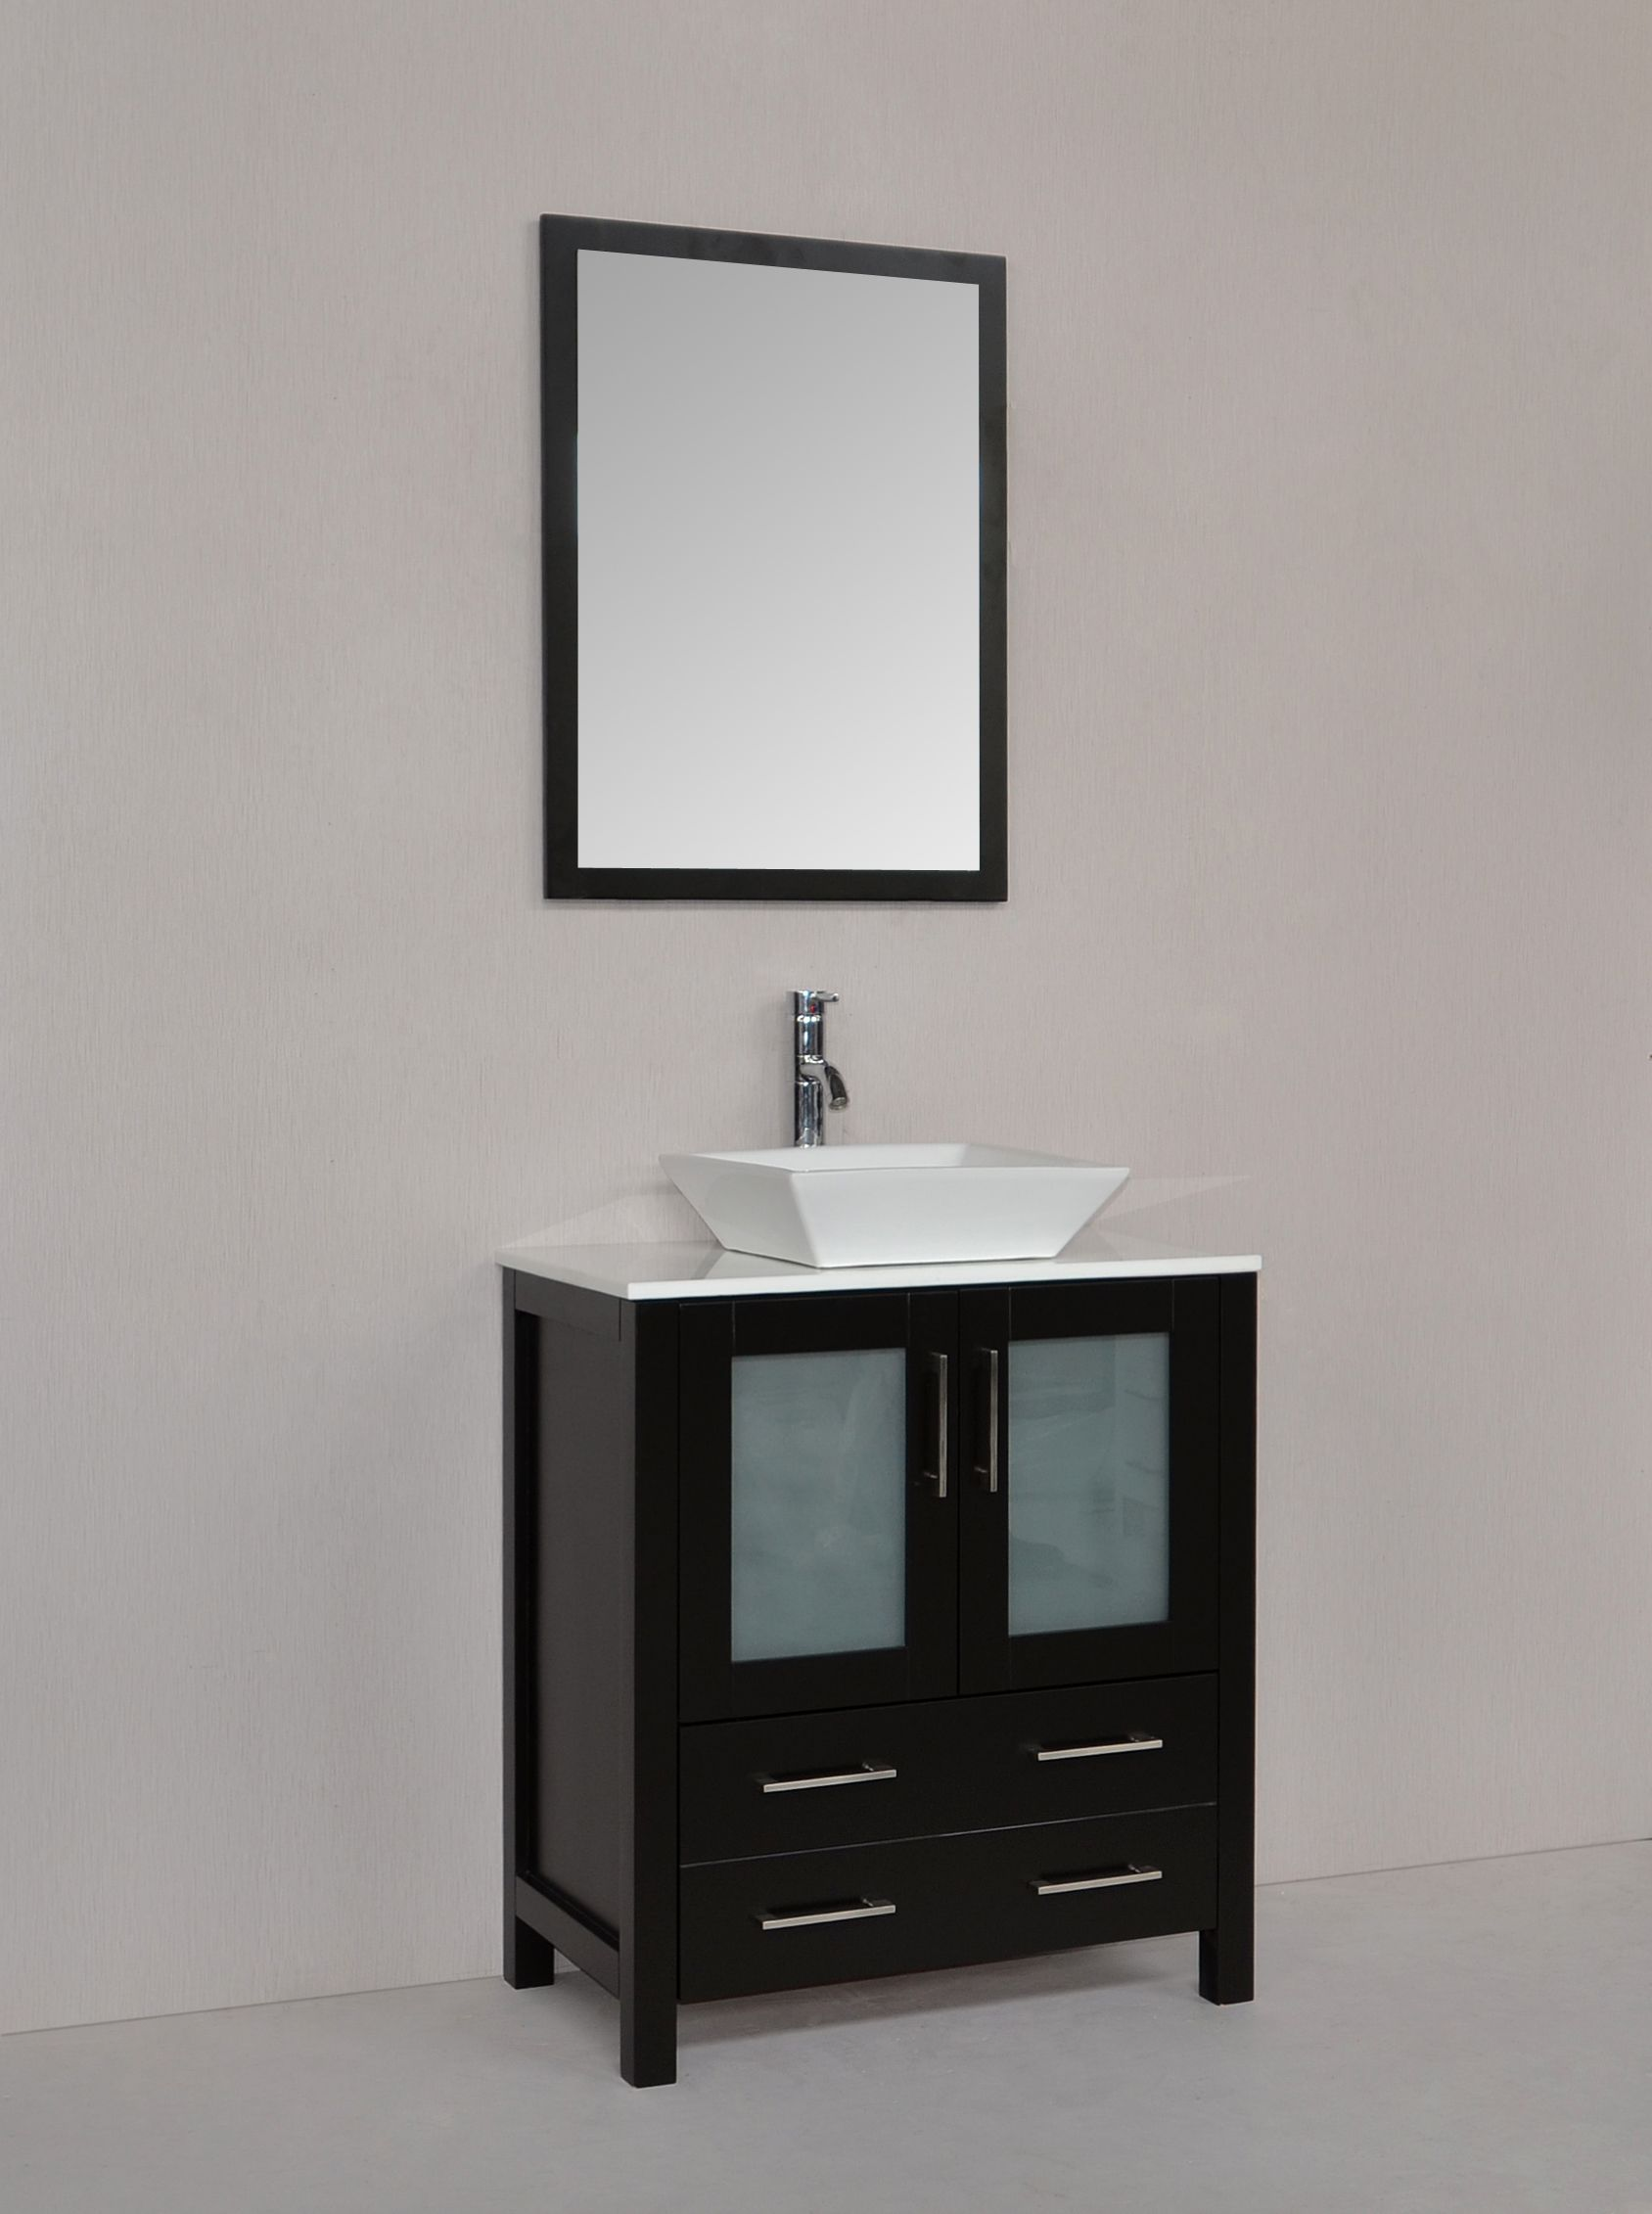 vera bathroom vanity 30 home decor store toronto and gta york taps - Home Decor Toronto